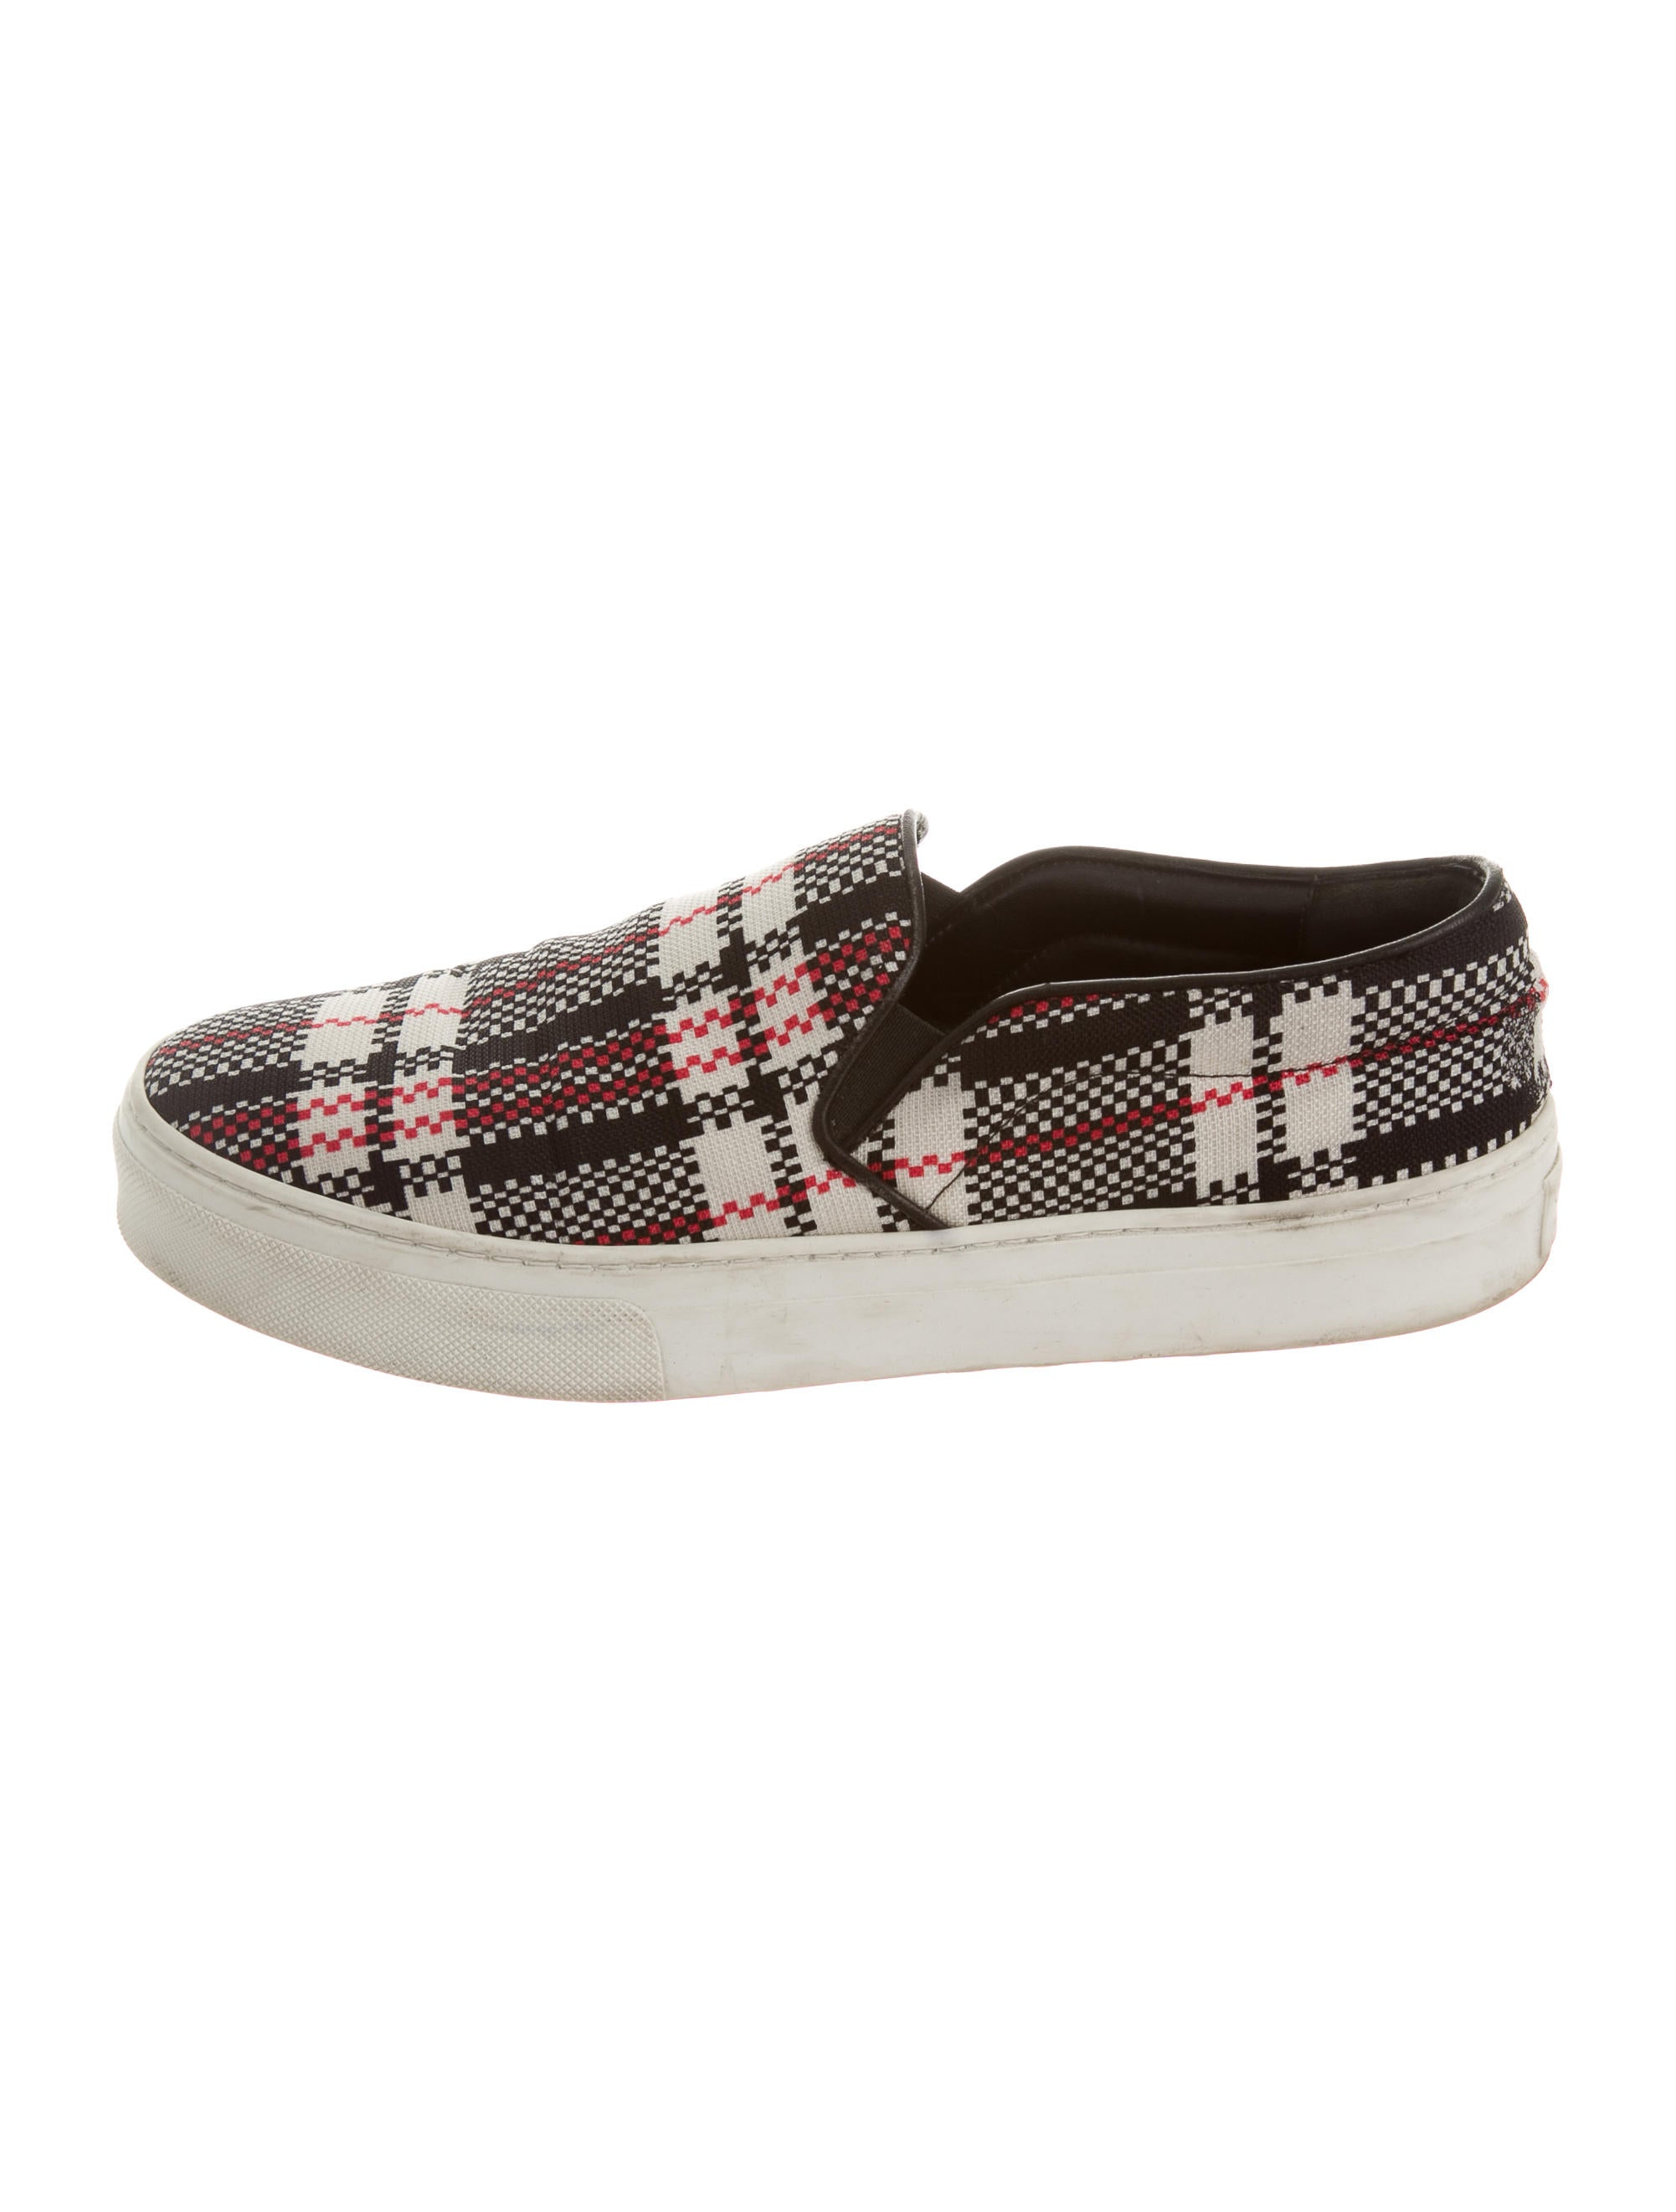 c 233 line plaid slip on sneakers shoes cel39658 the